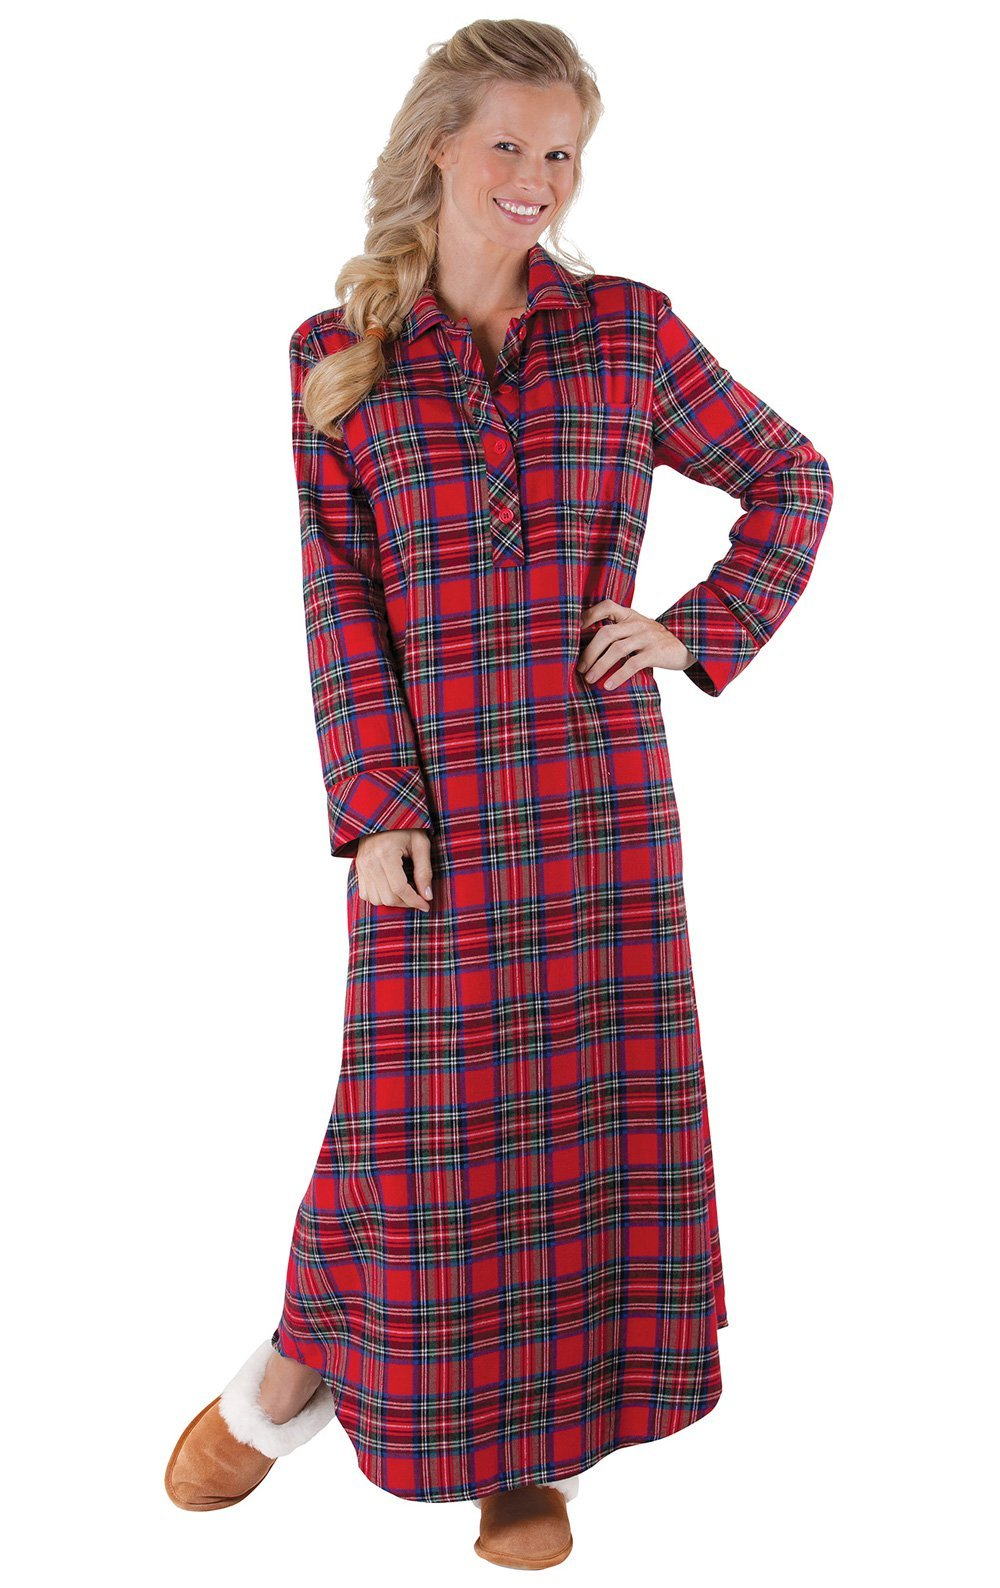 PajamaGram Women's Flannel Nightgown Plaid - Nightgown Womens, Red, L, 12-14 by PajamaGram